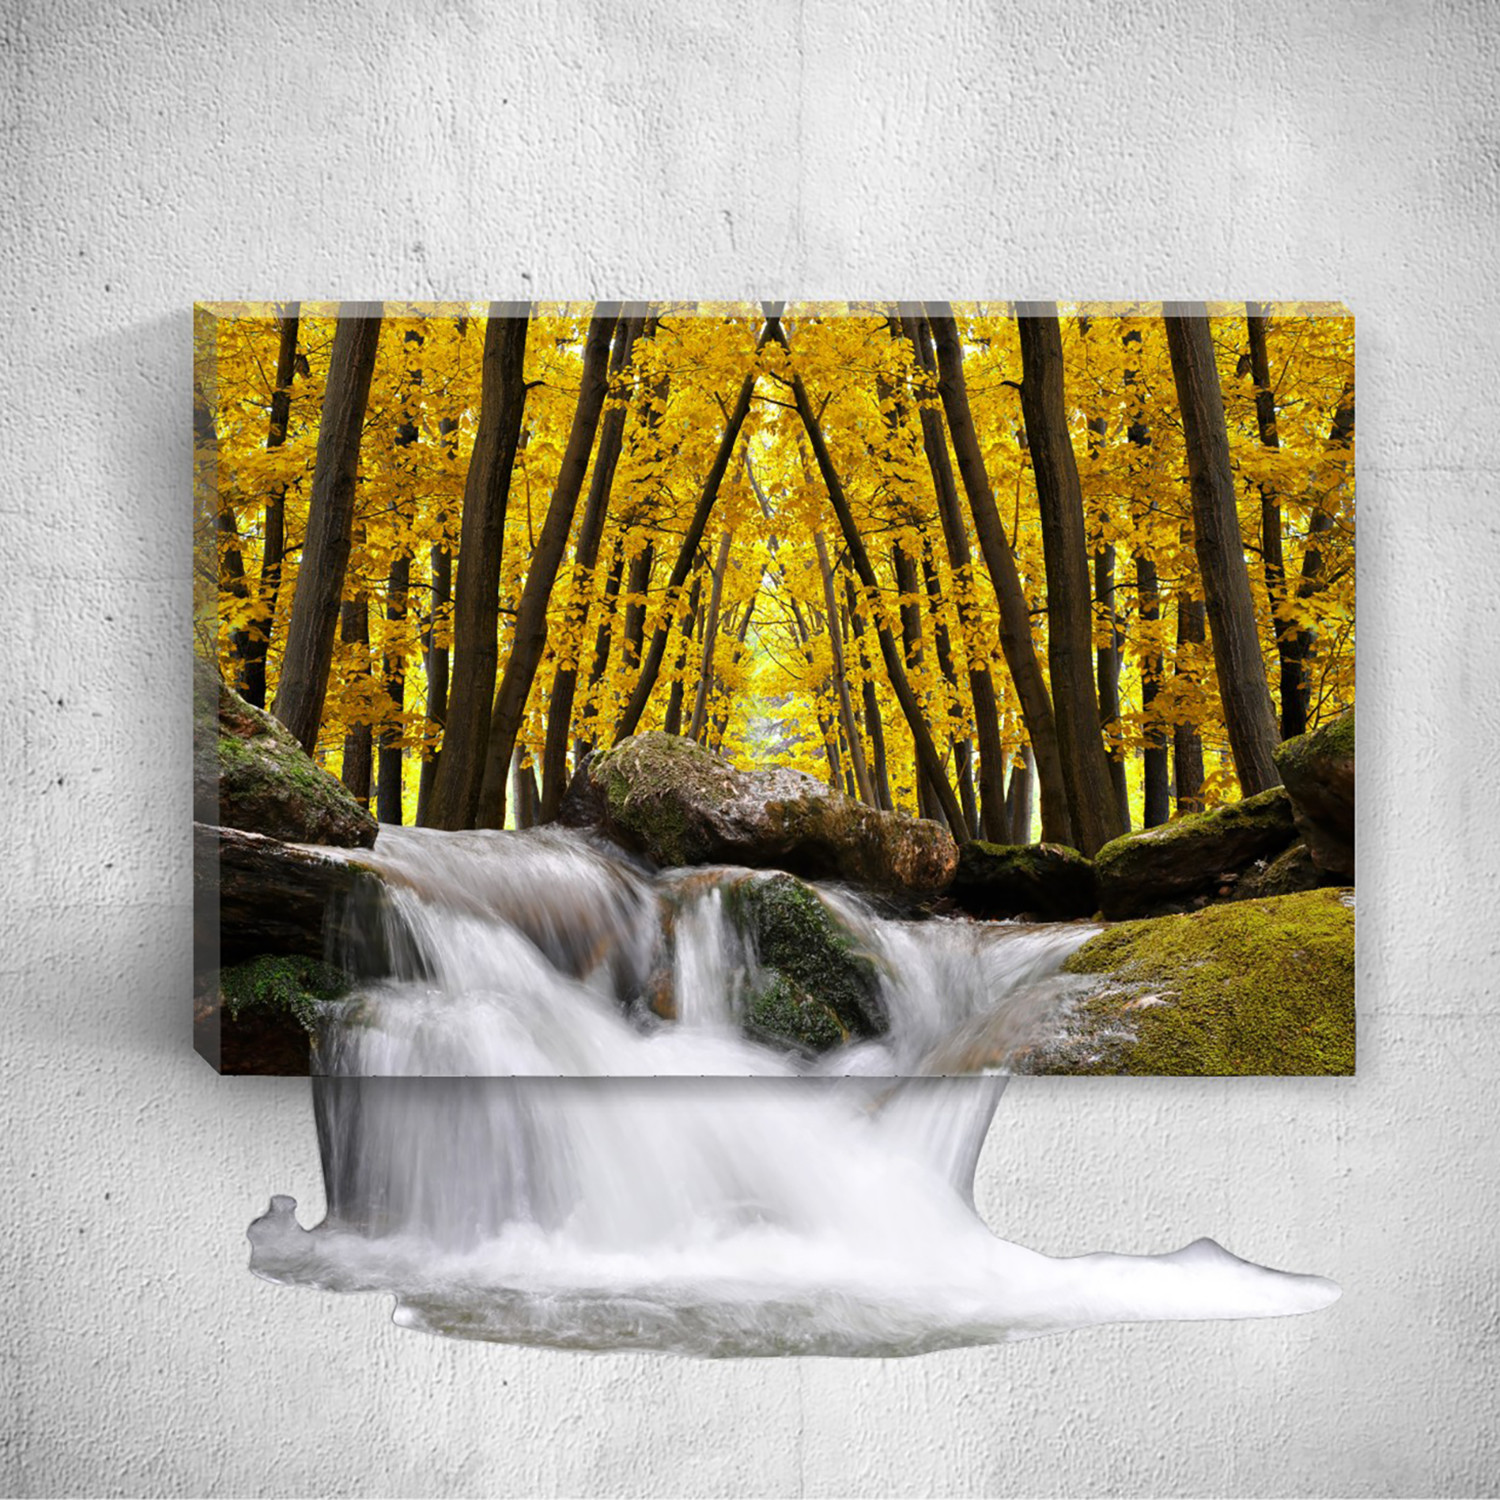 Mostic 3D Canvas + Decal - Optical Illusion Wall Art - Touch of Modern